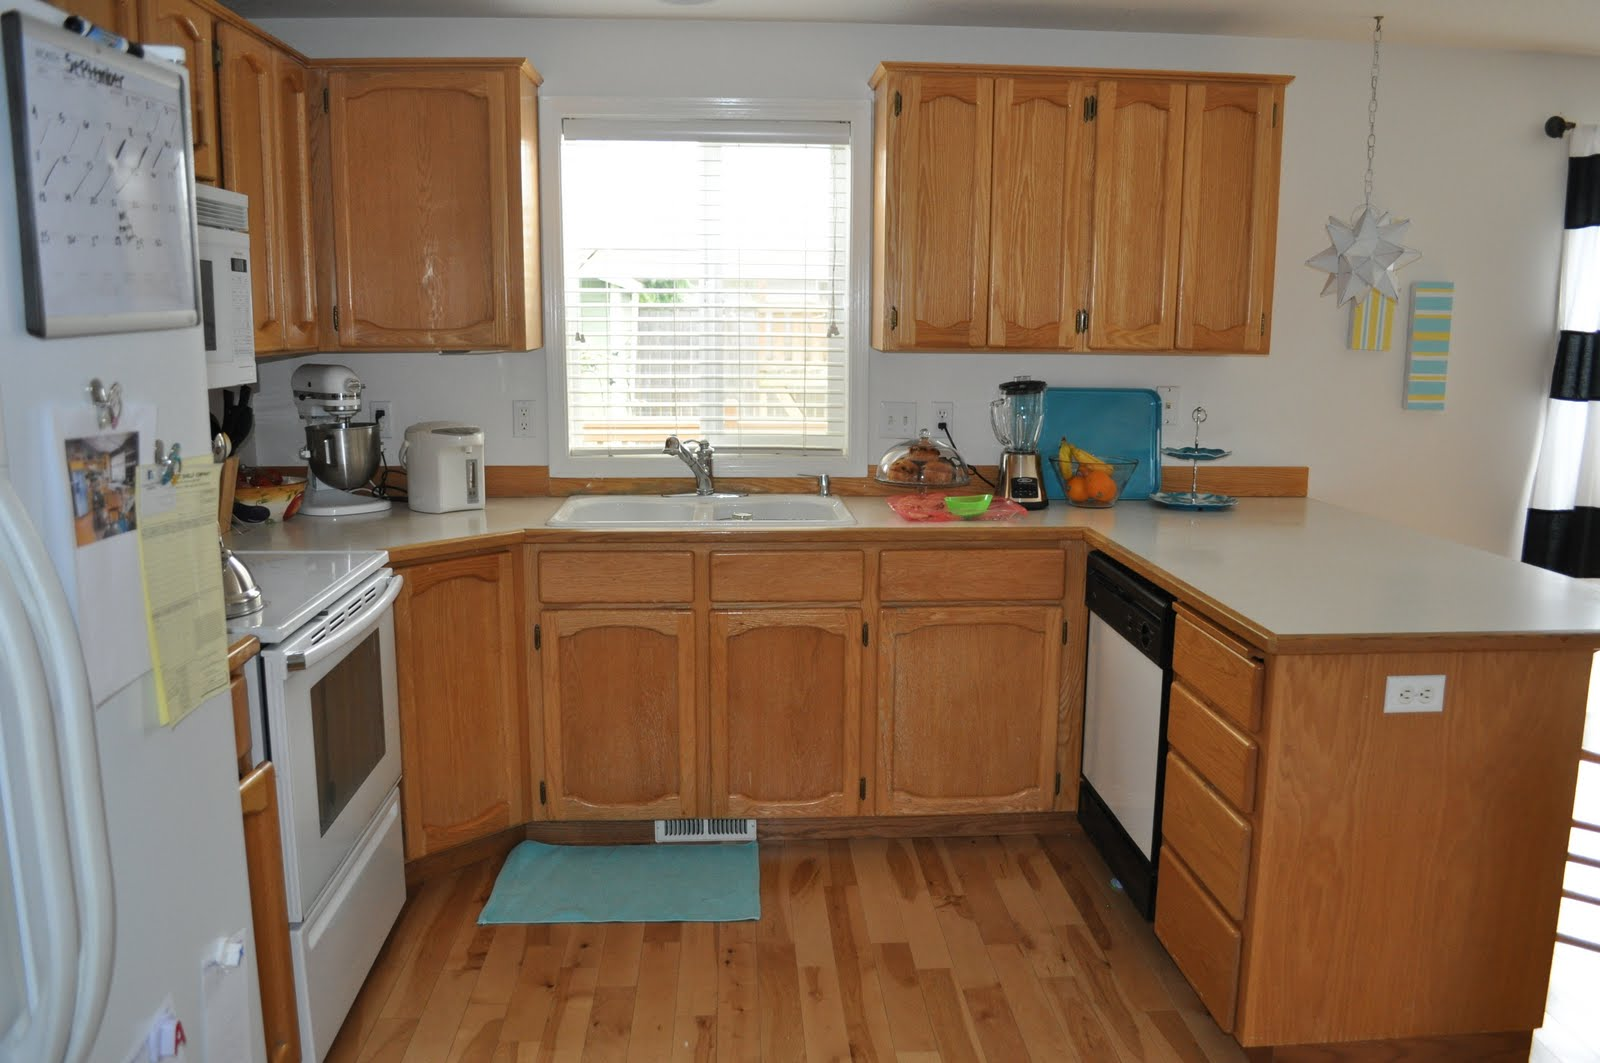 Suburbs Mama Kitchen Remodel In The Works - Small u shaped kitchen remodel ideas